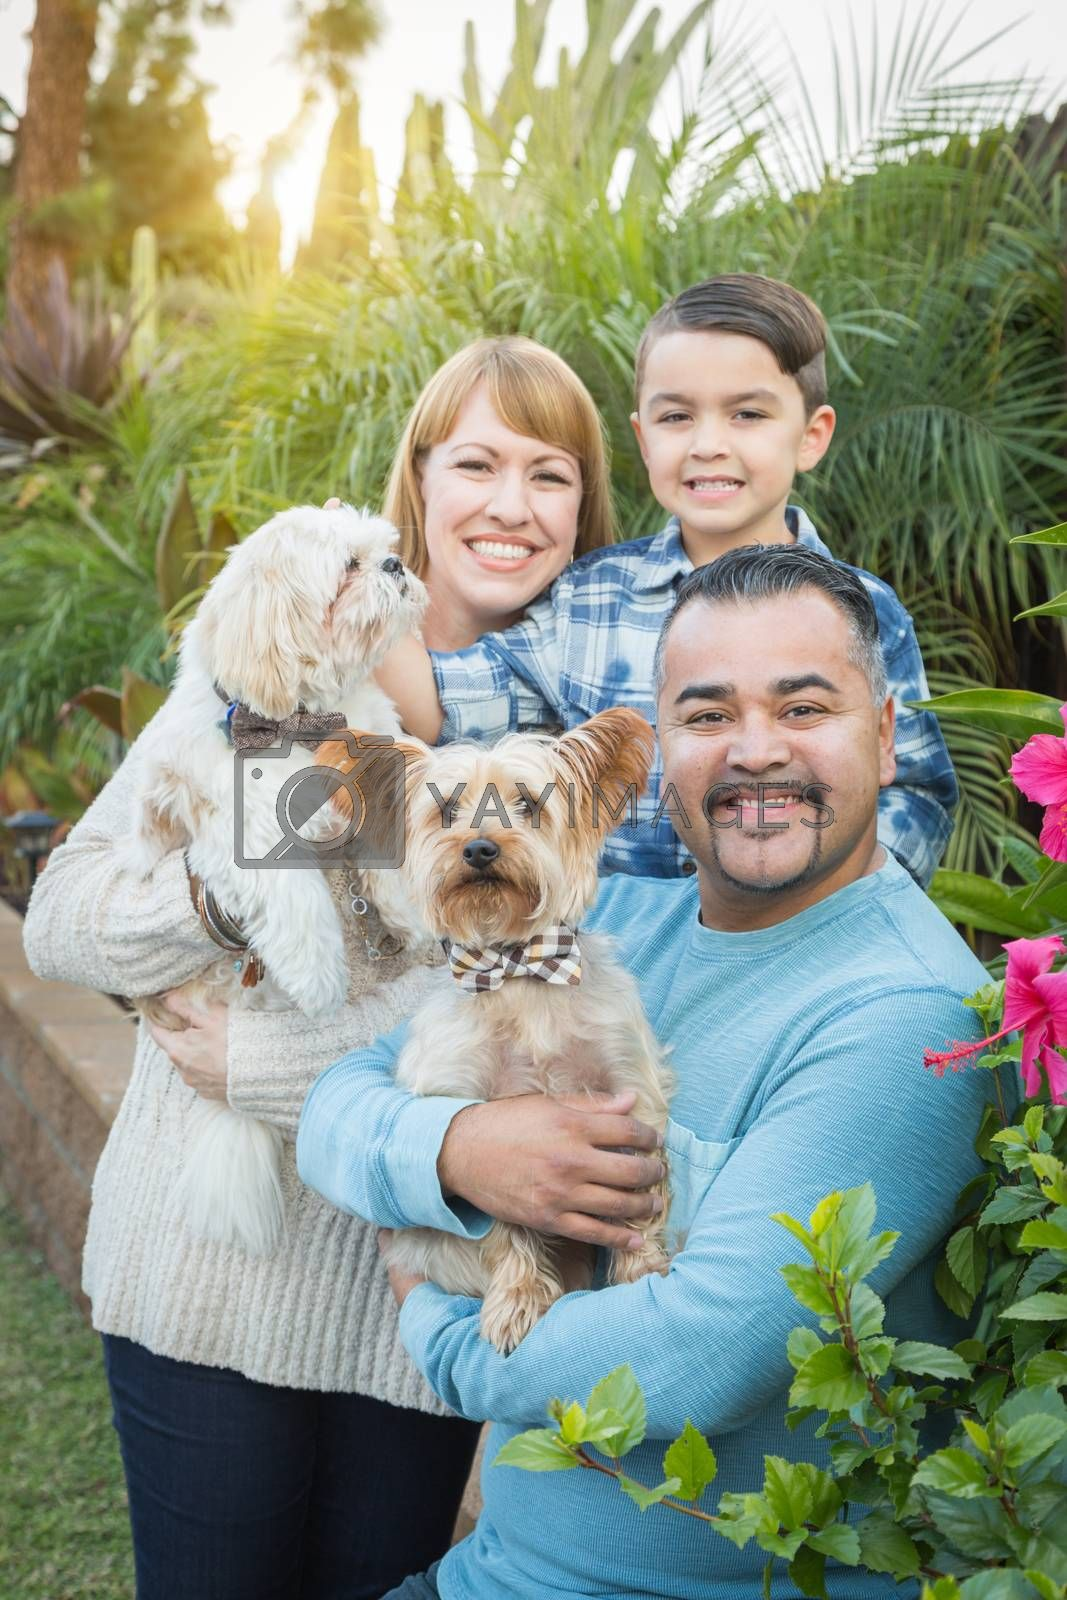 Happy Mixed Race Family Portrait Outdoors.